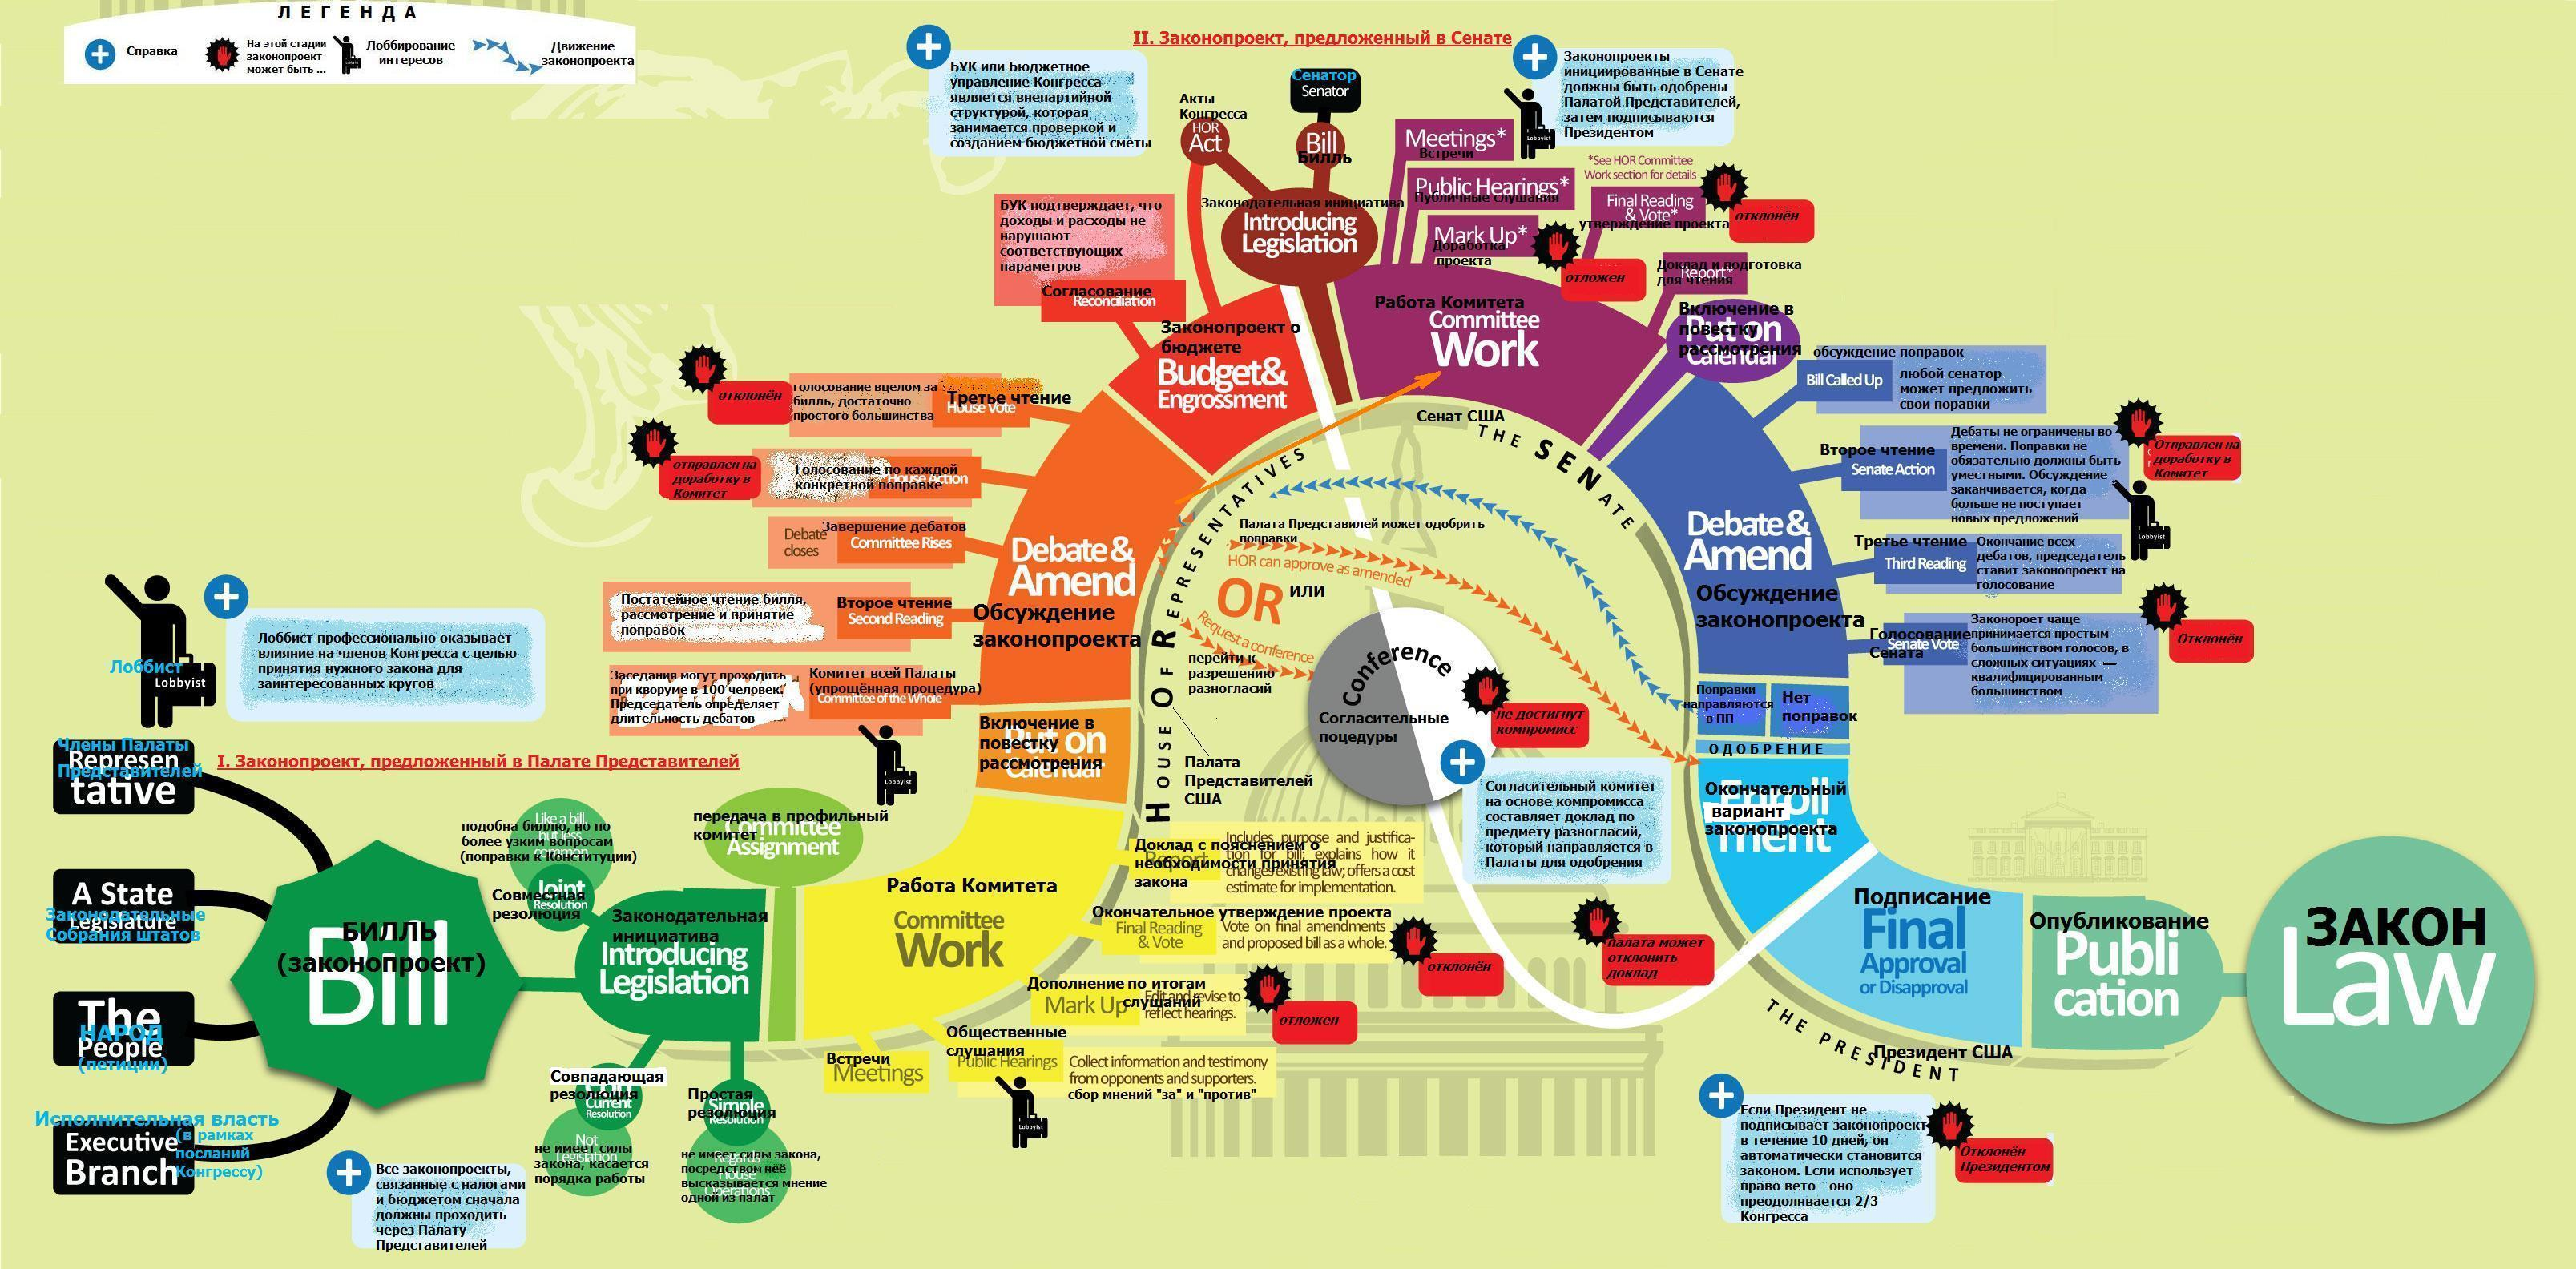 1000+ images about Infographic on Pinterest   Behance ...